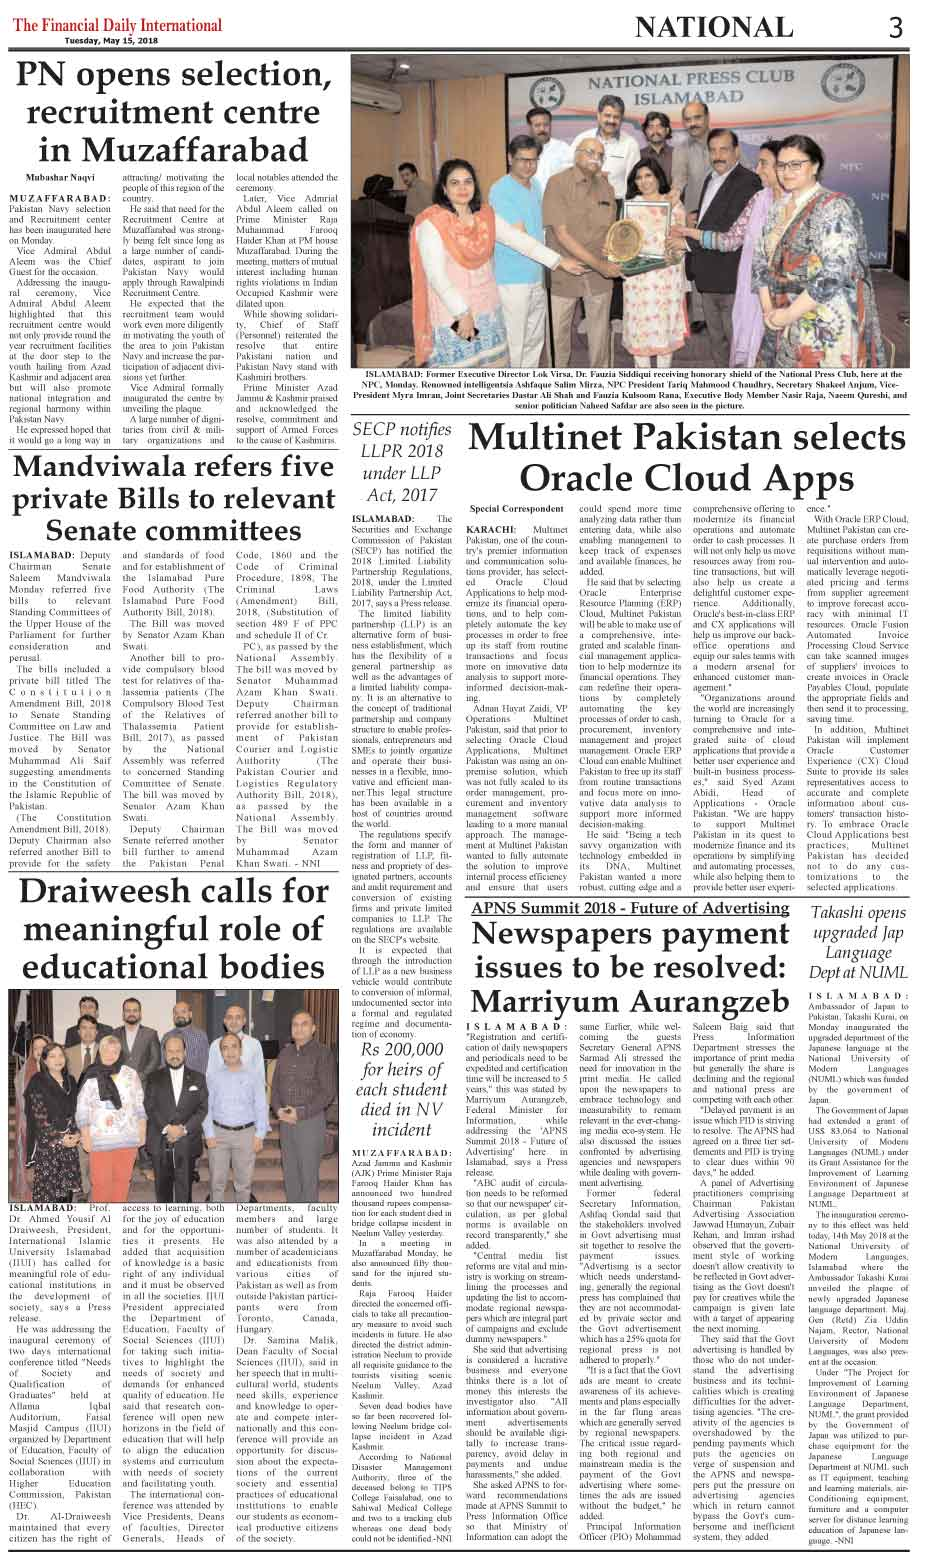 The Financial Daily Epaper 15-05-2018 Page: 3 - The Financial Daily